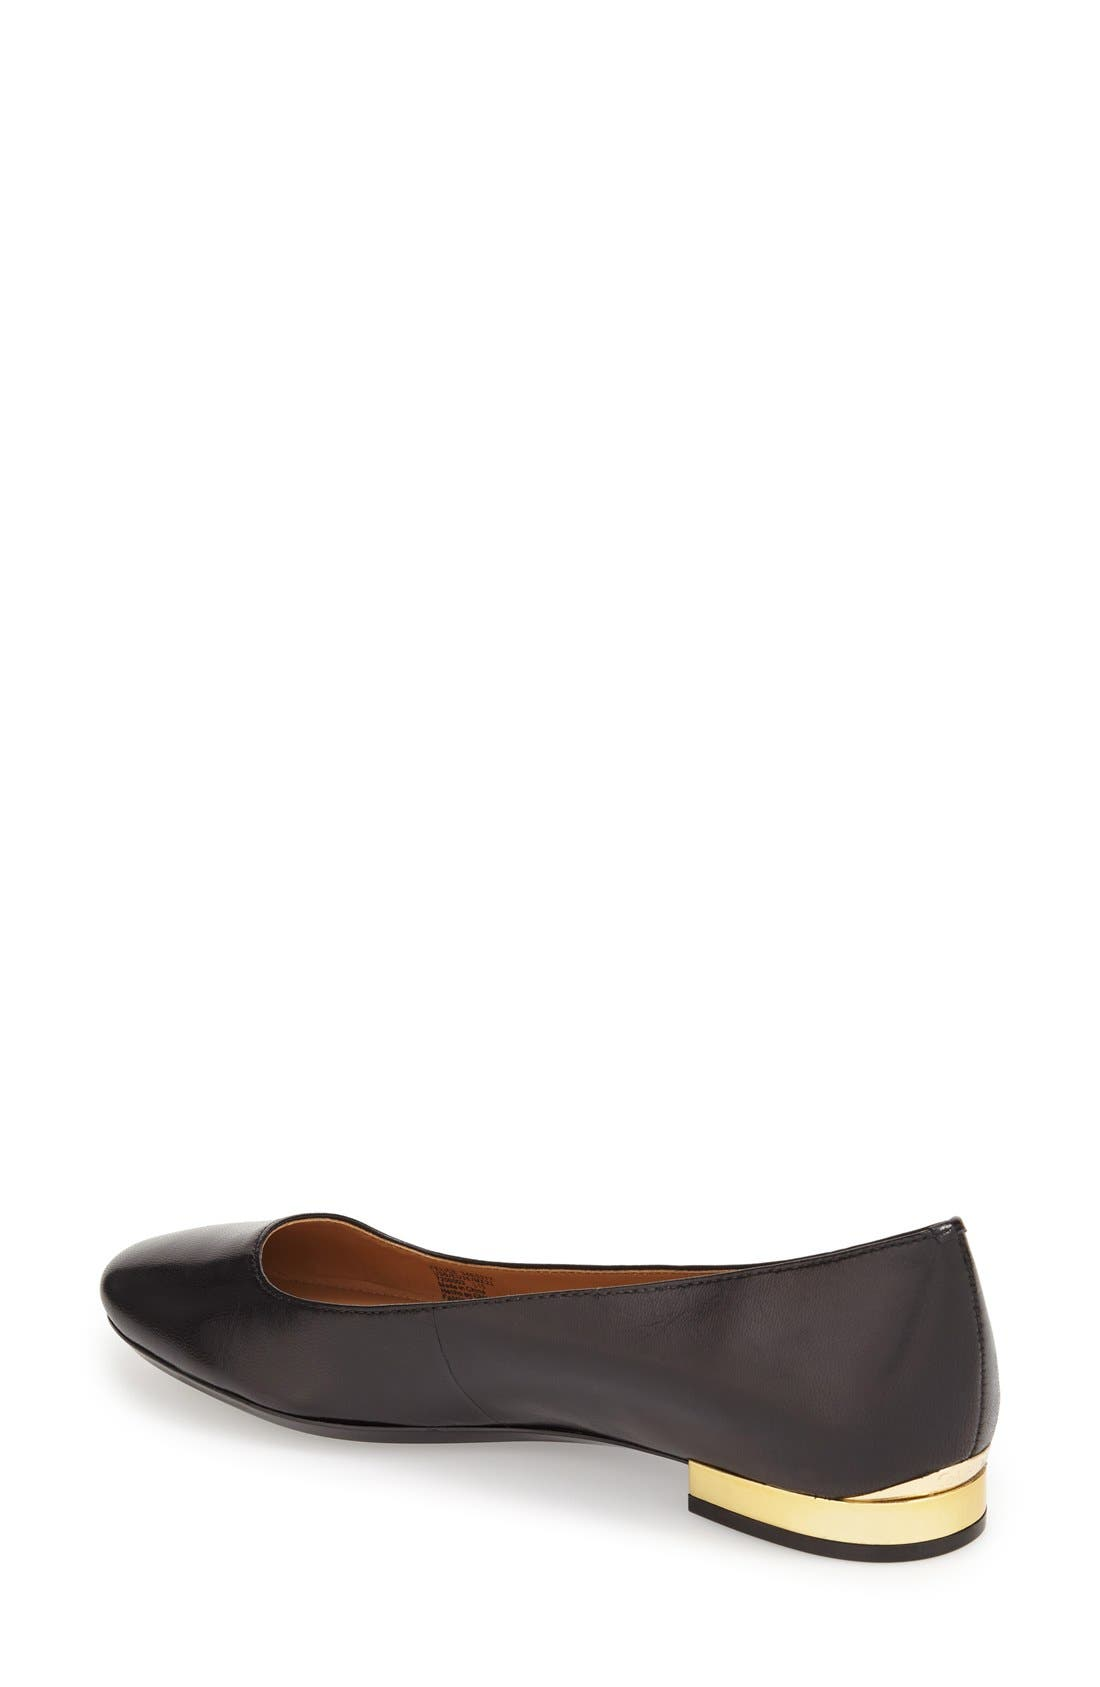 Alternate Image 2  - Calvin Klein 'Felice' Flat (Women)